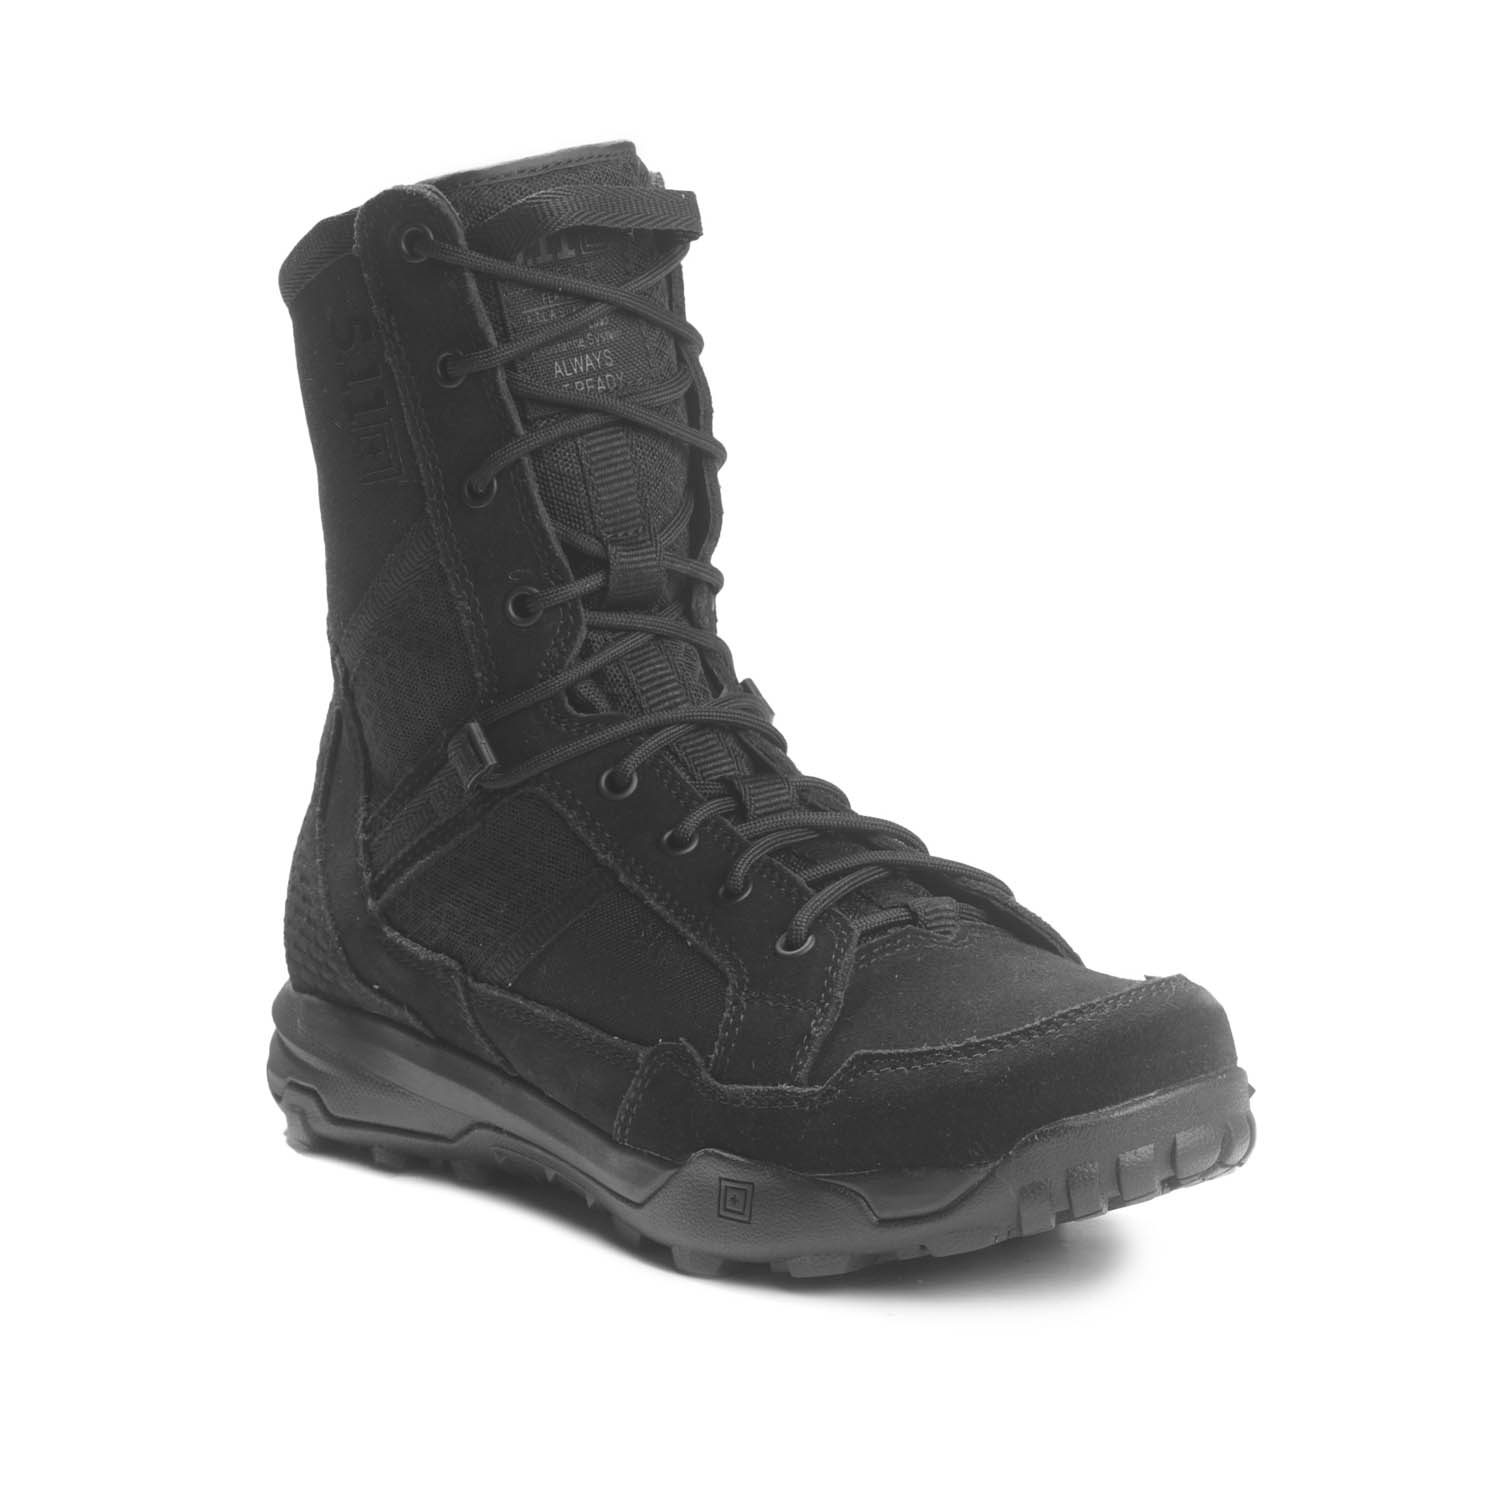 "5.11 Tactical ATLAS 8"" Lace Up Duty Boot"